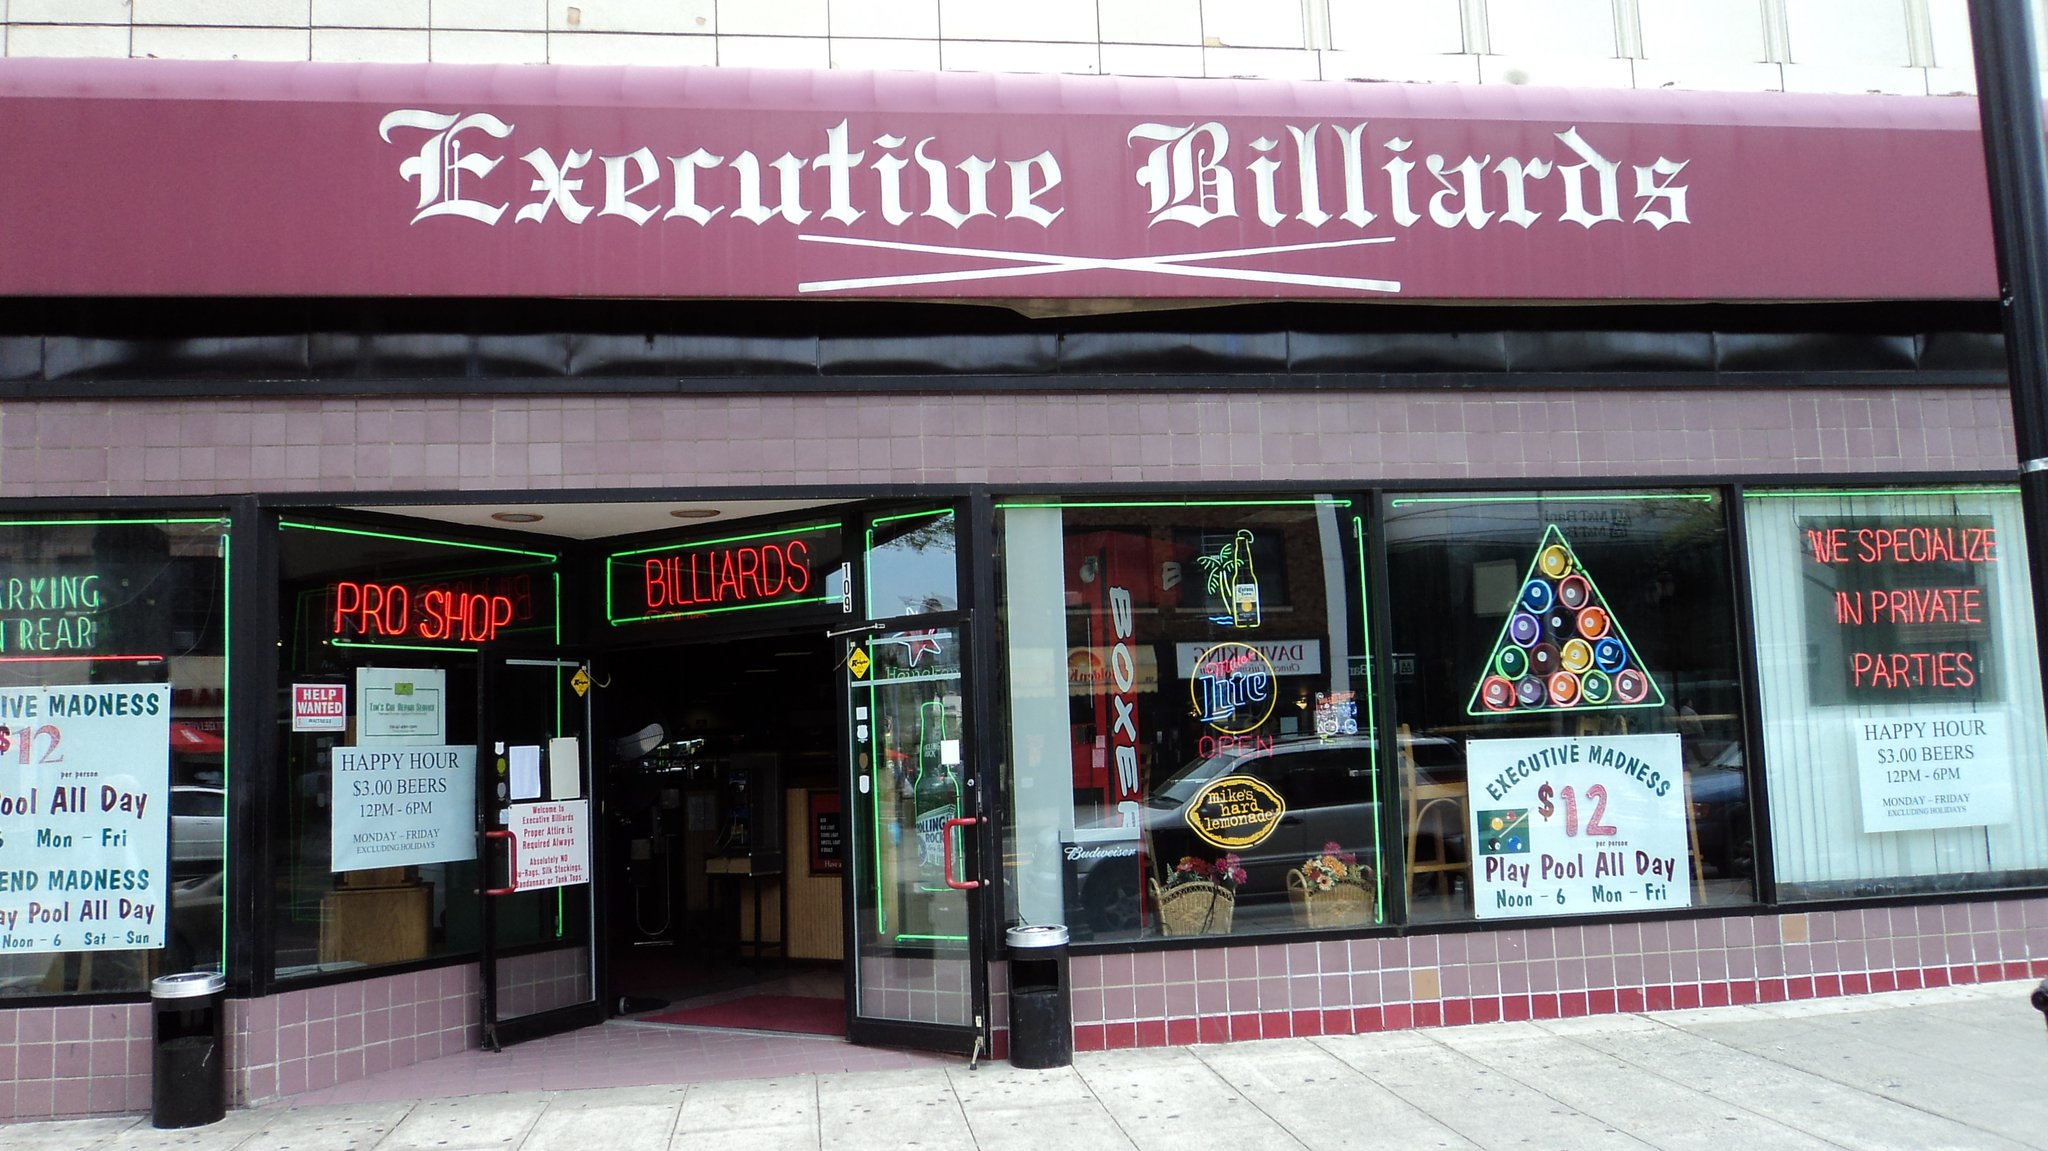 Executive Billiards